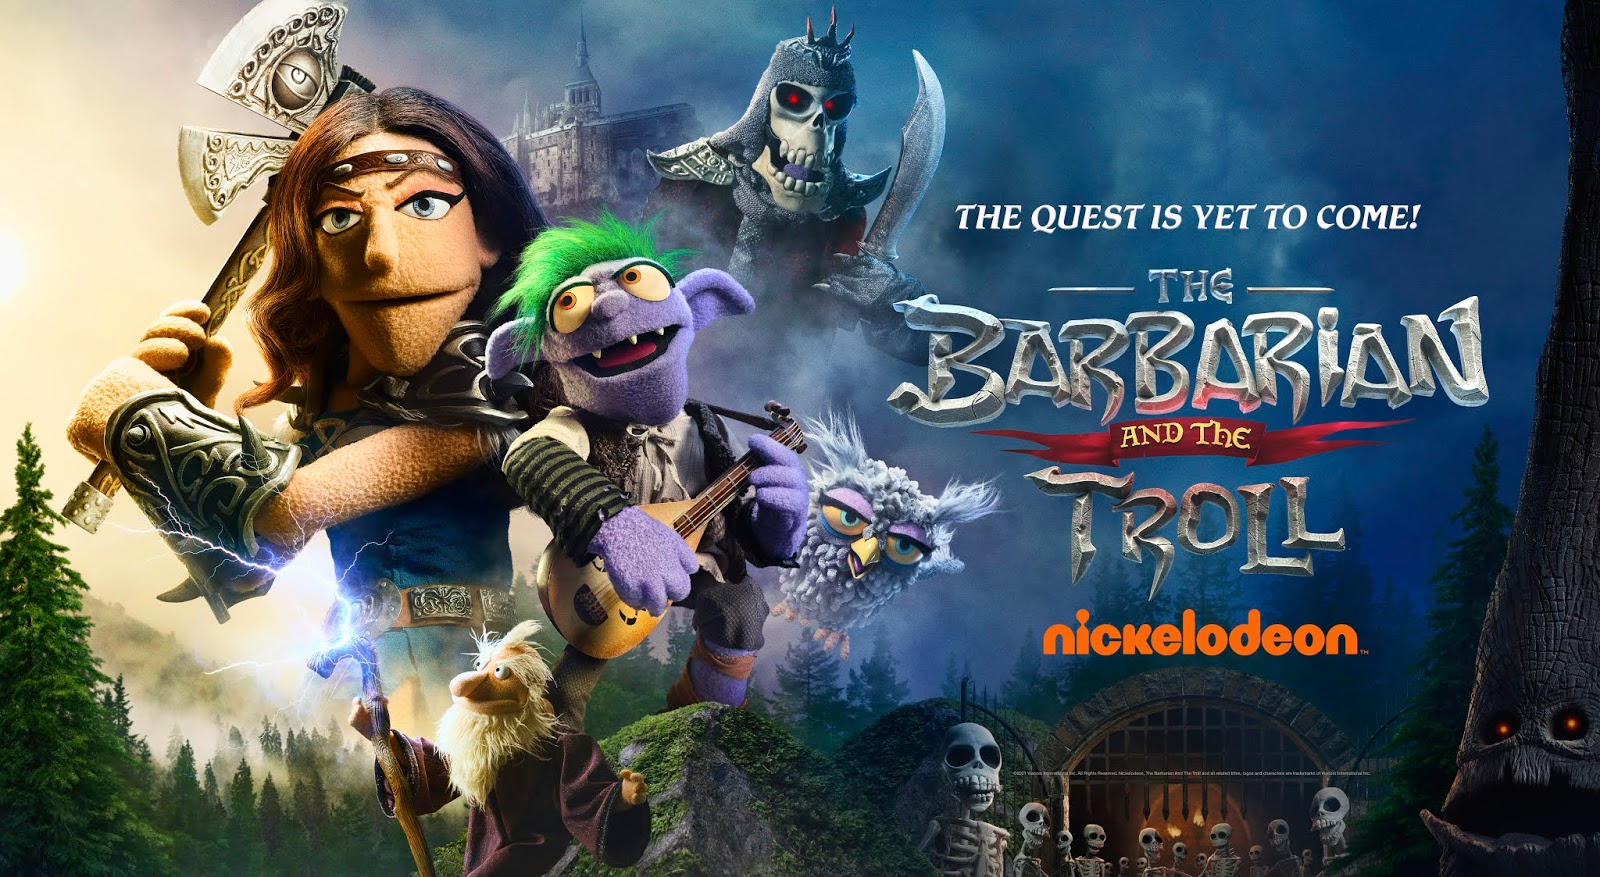 'Come Together' Promos + Sneak Peeks | The Barbarian and the Troll | Nickelodeon